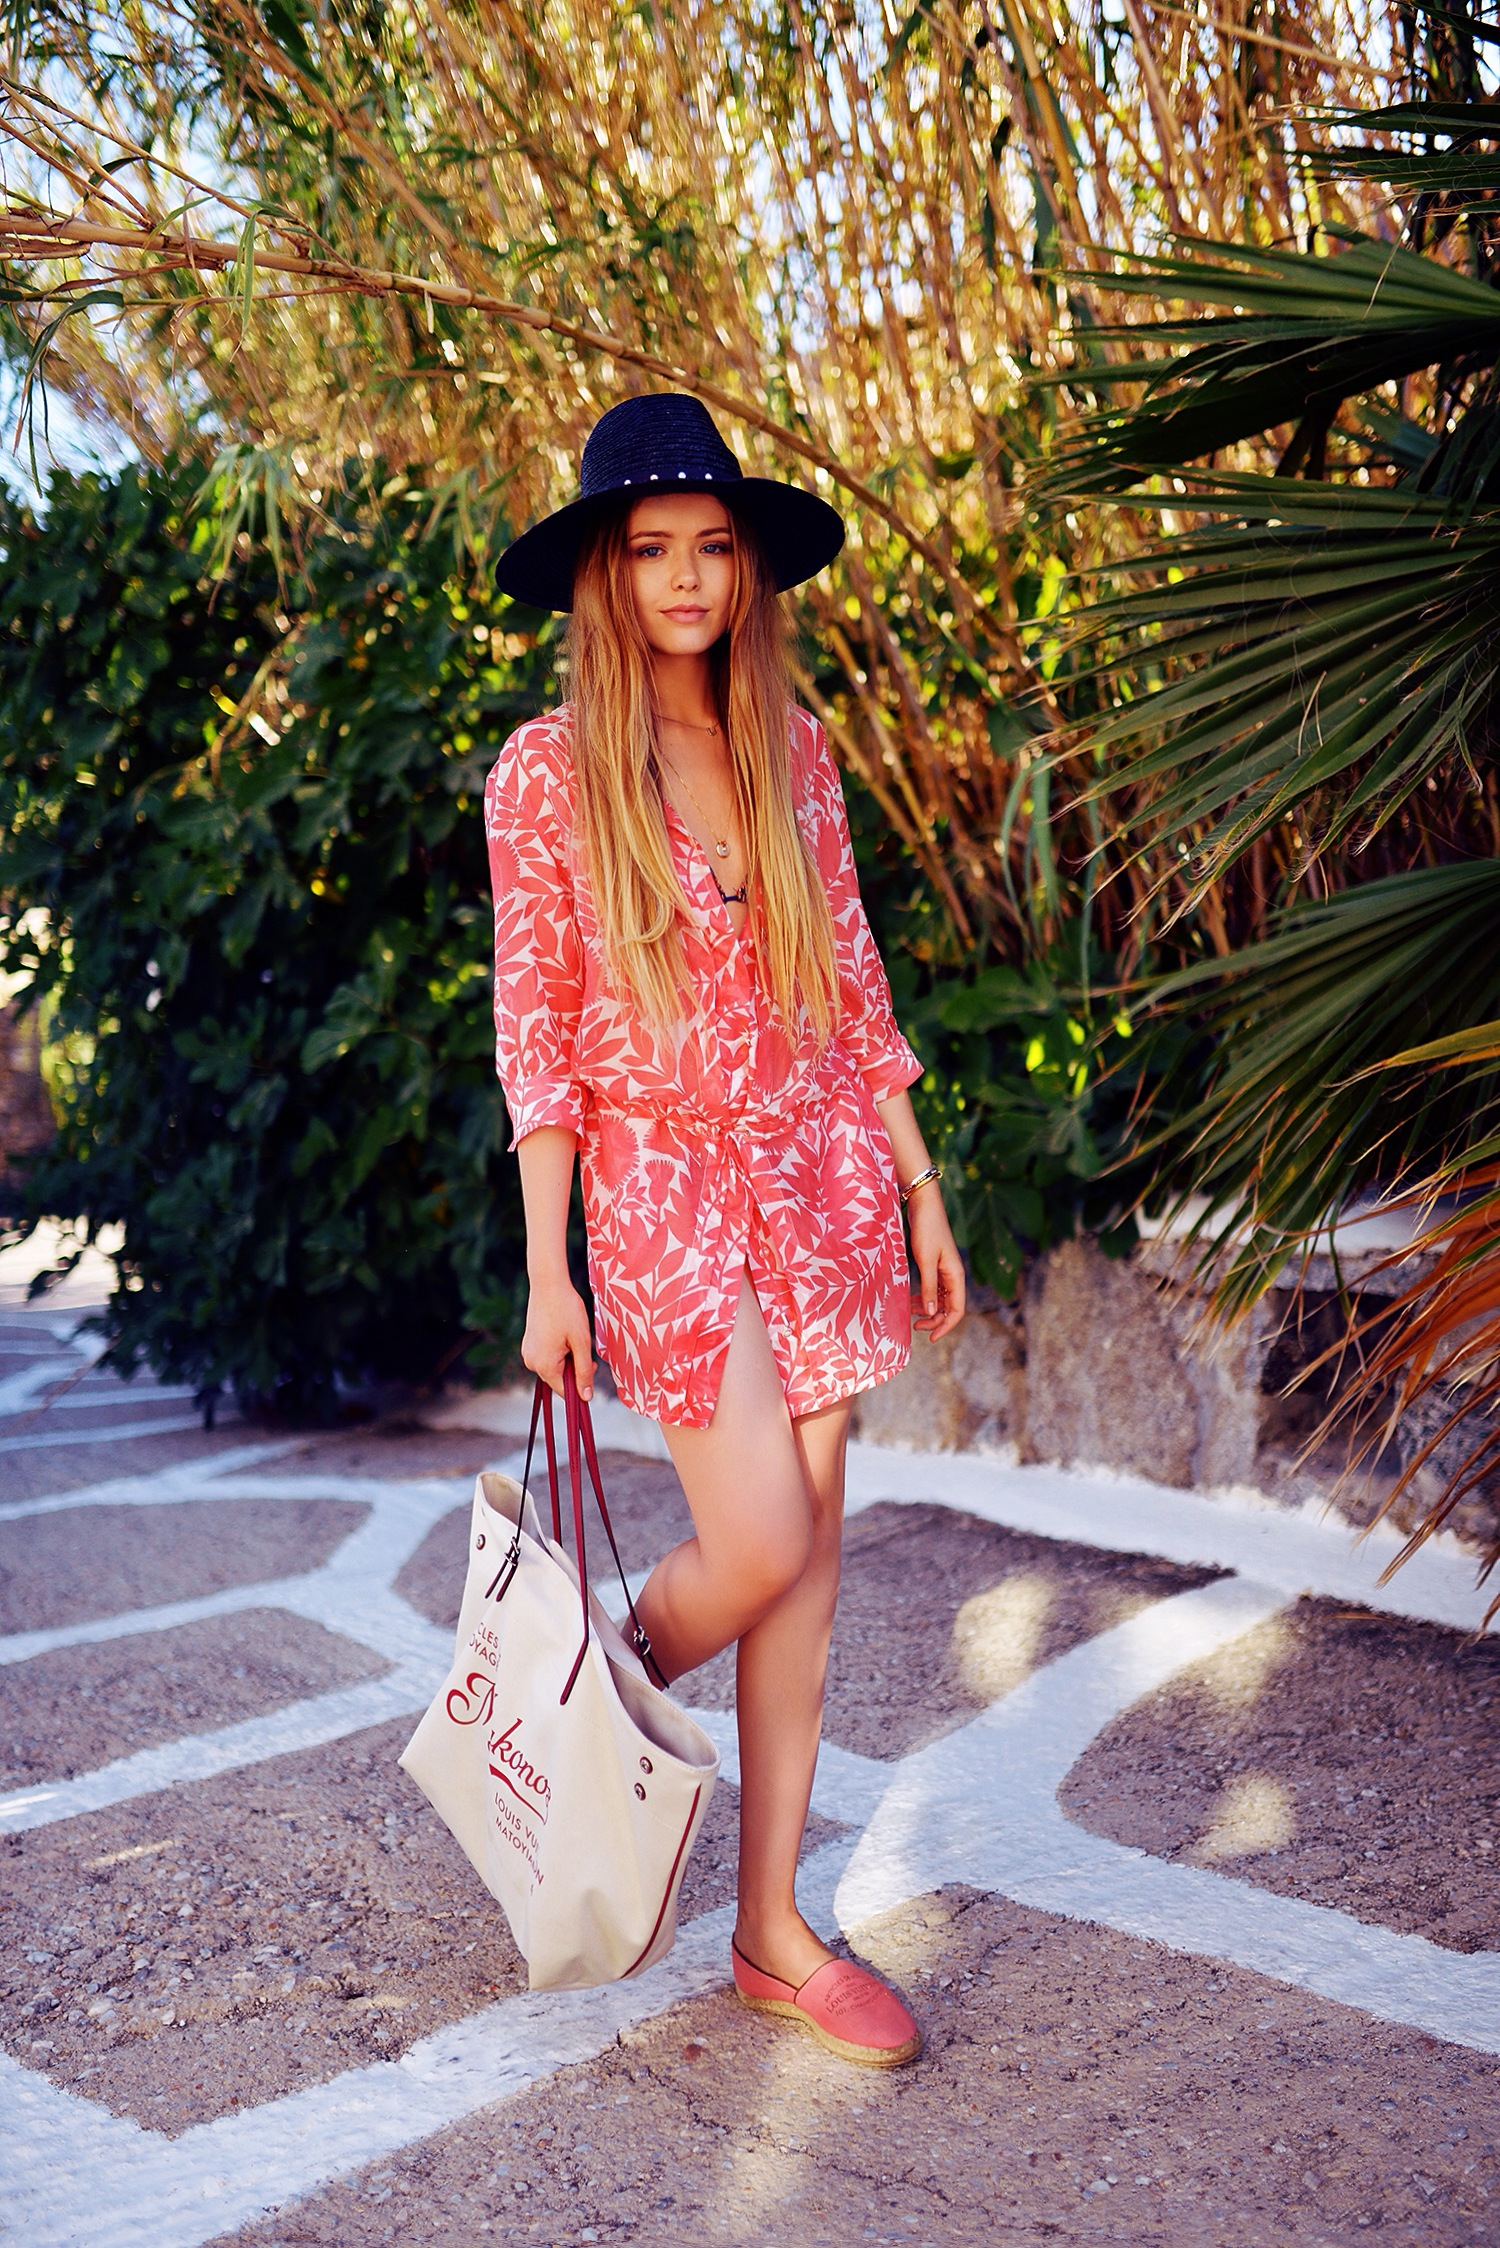 Kristina Bazan is wearing a red and white tropical dress and shoes from Louis Vuitton and a hat from The Kooples